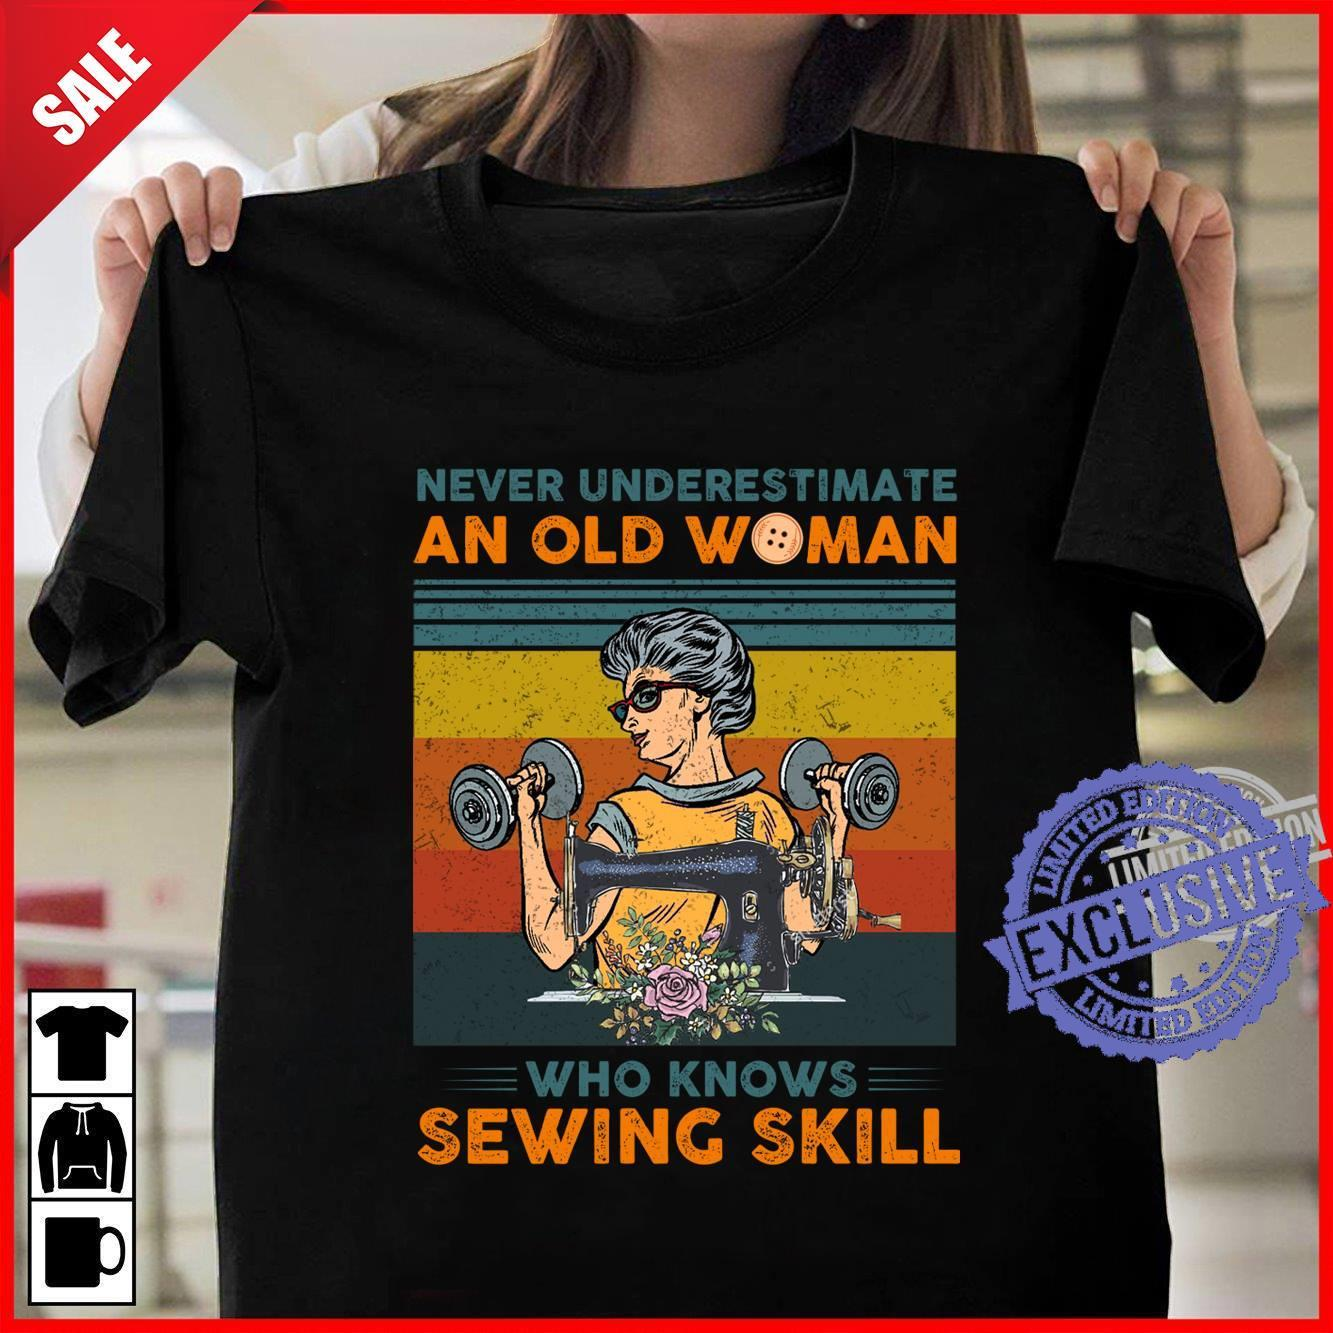 Never underestimate an old woman who knows sewing skill shirt